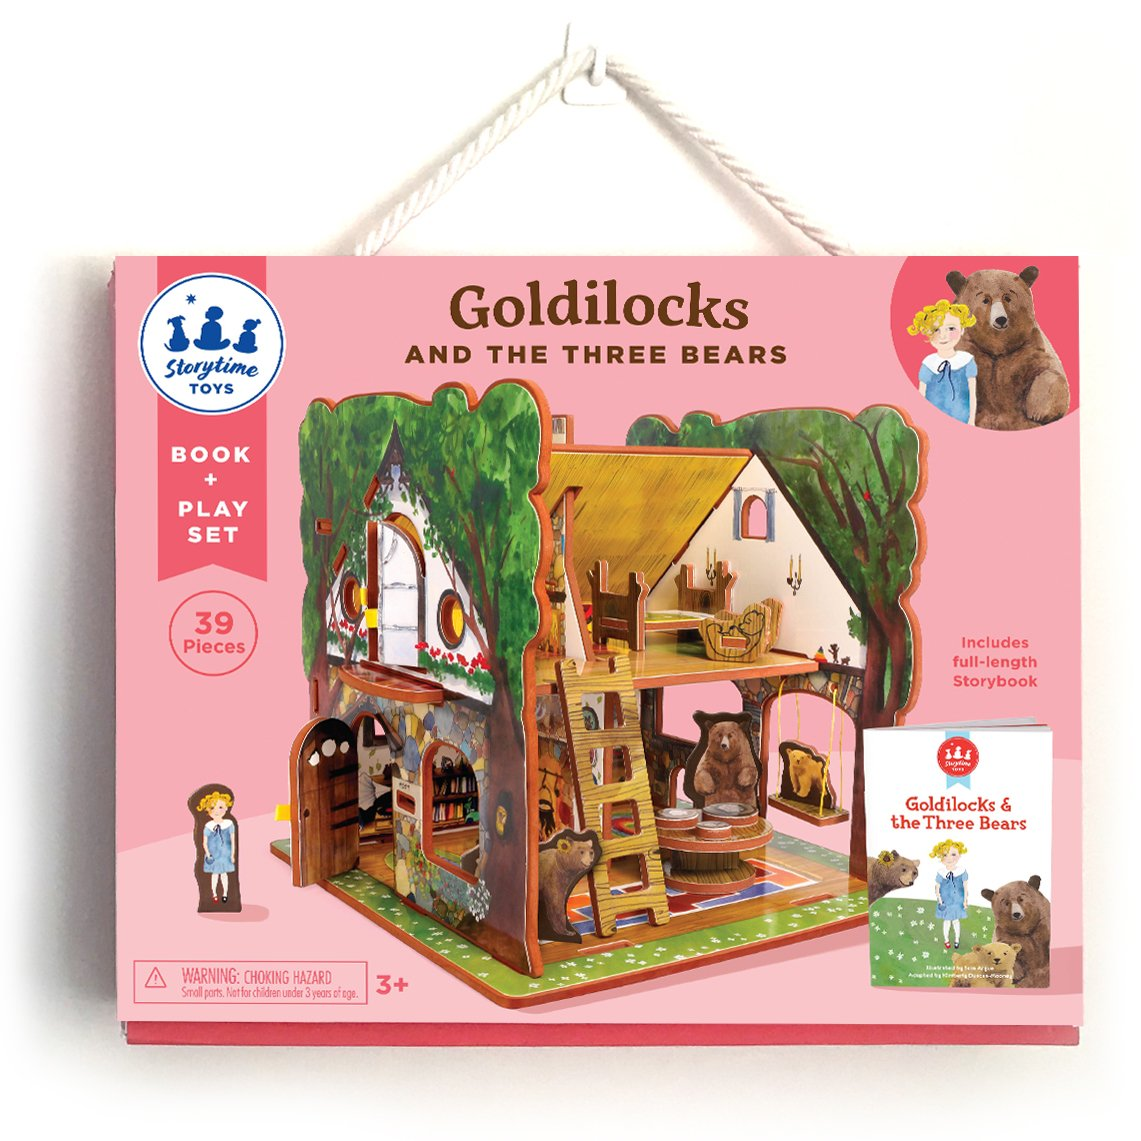 Storytime Toys Goldilocks and the Three Bears